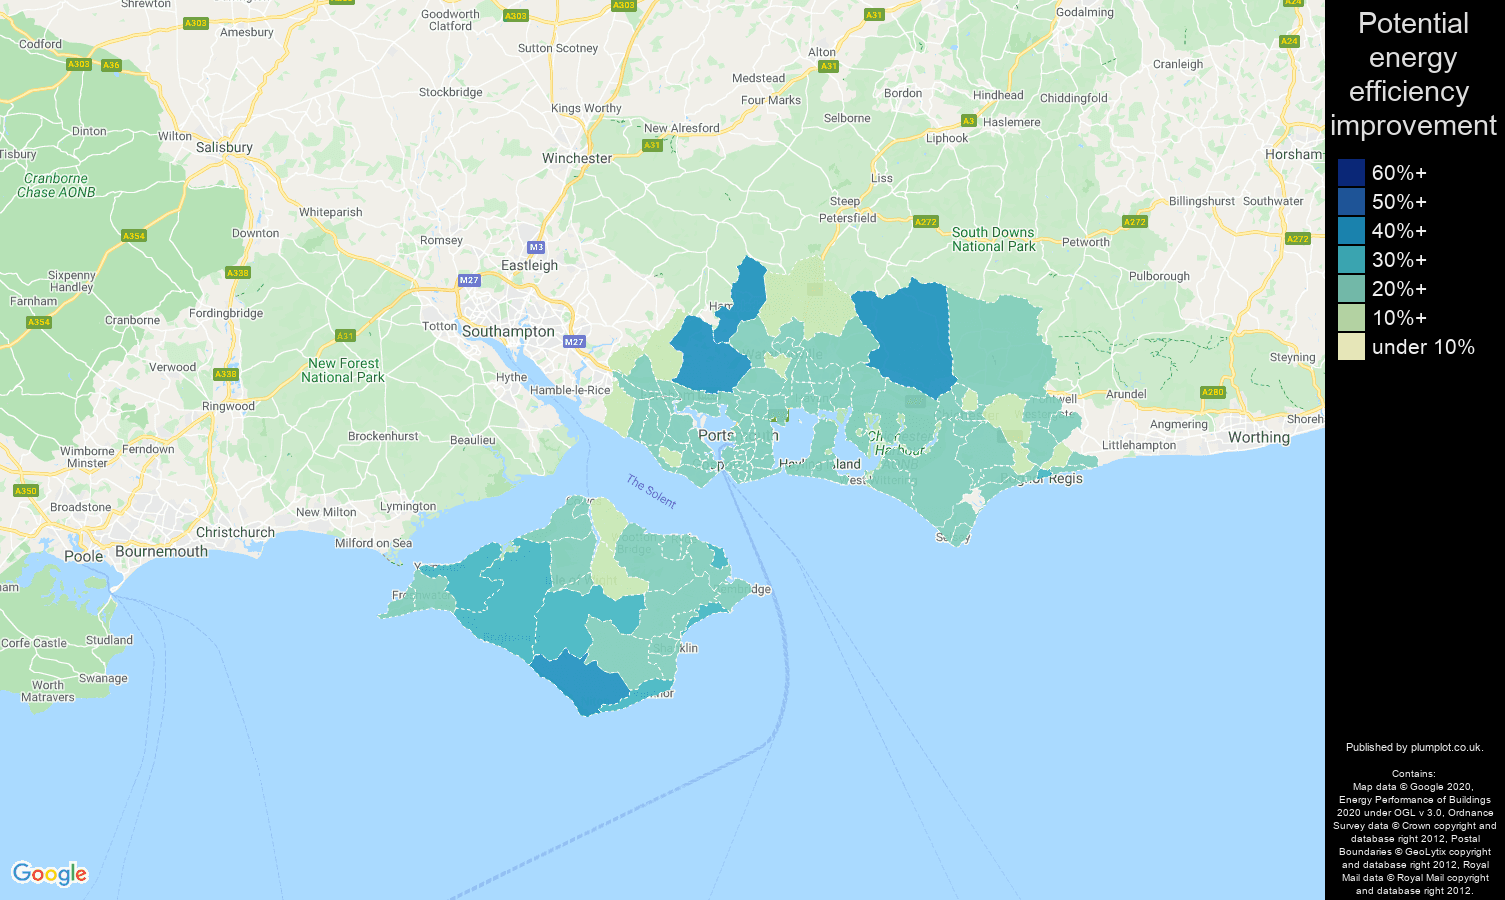 Portsmouth map of potential energy efficiency improvement of houses